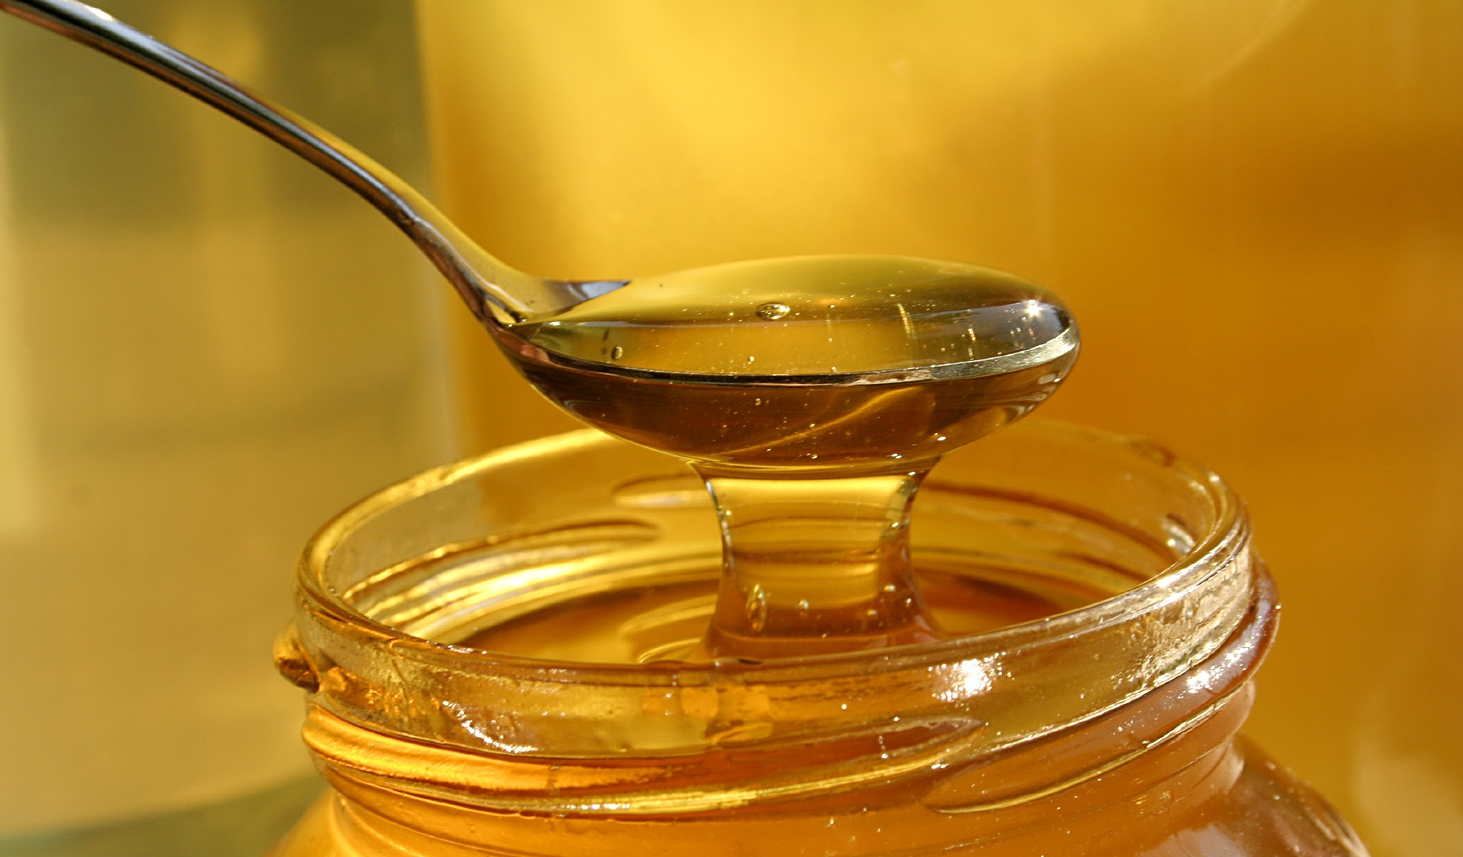 Honey and molasses make excellent substitutes for corn syrup.